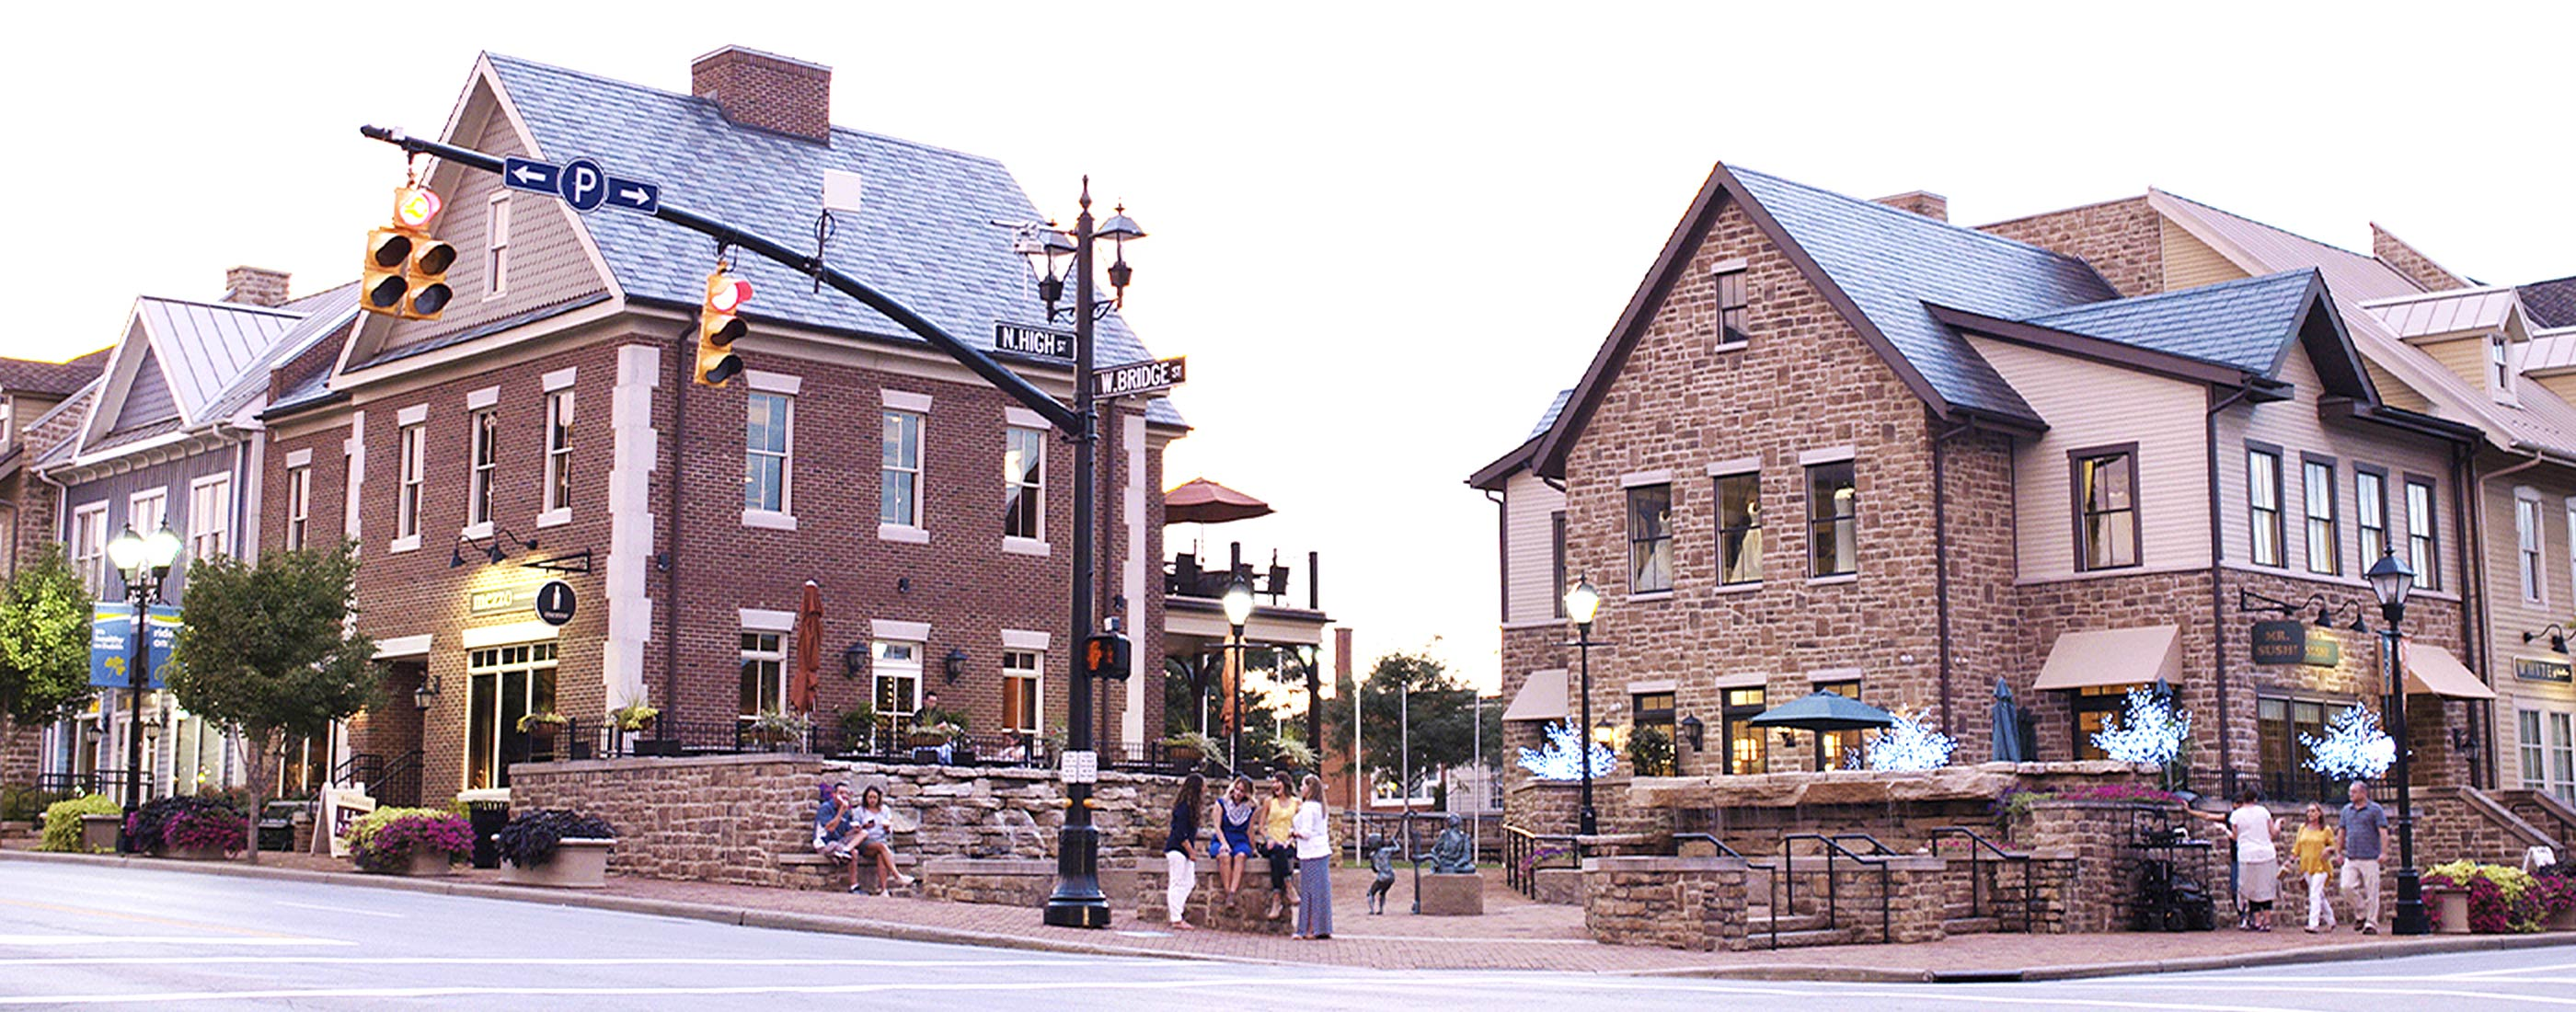 Historic downtown intersection at Bridge and High Streets in Dublin, Ohio.